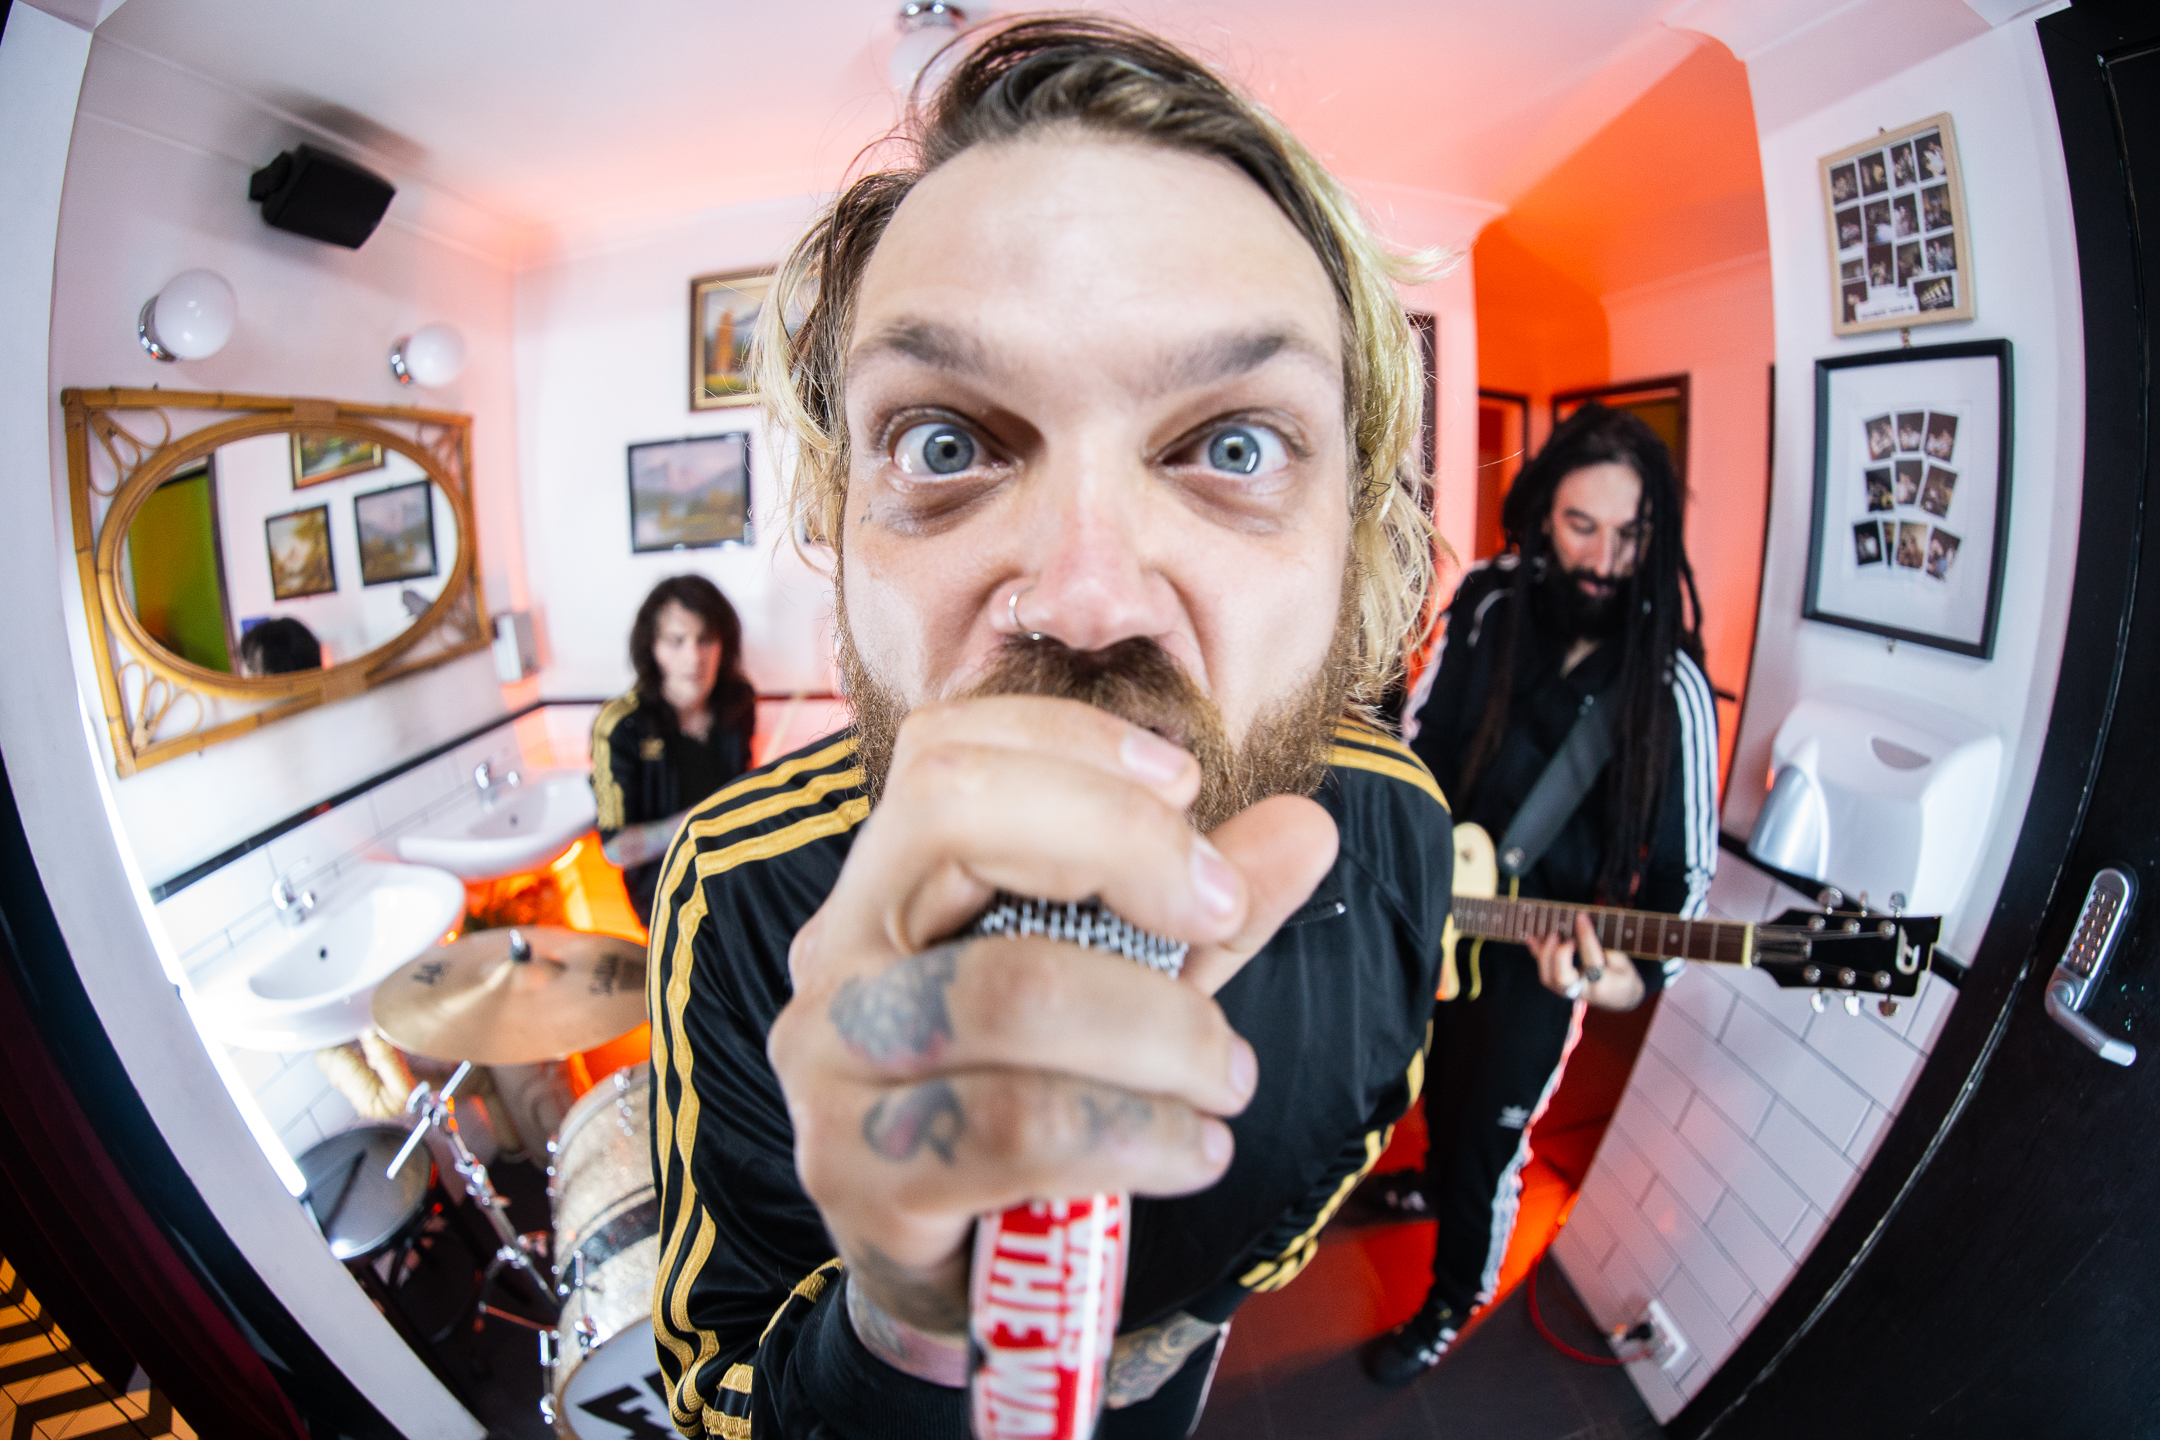 Go Behind The Scenes With Sydney's FANGZ On Their 'Falling Out' Video Shoot